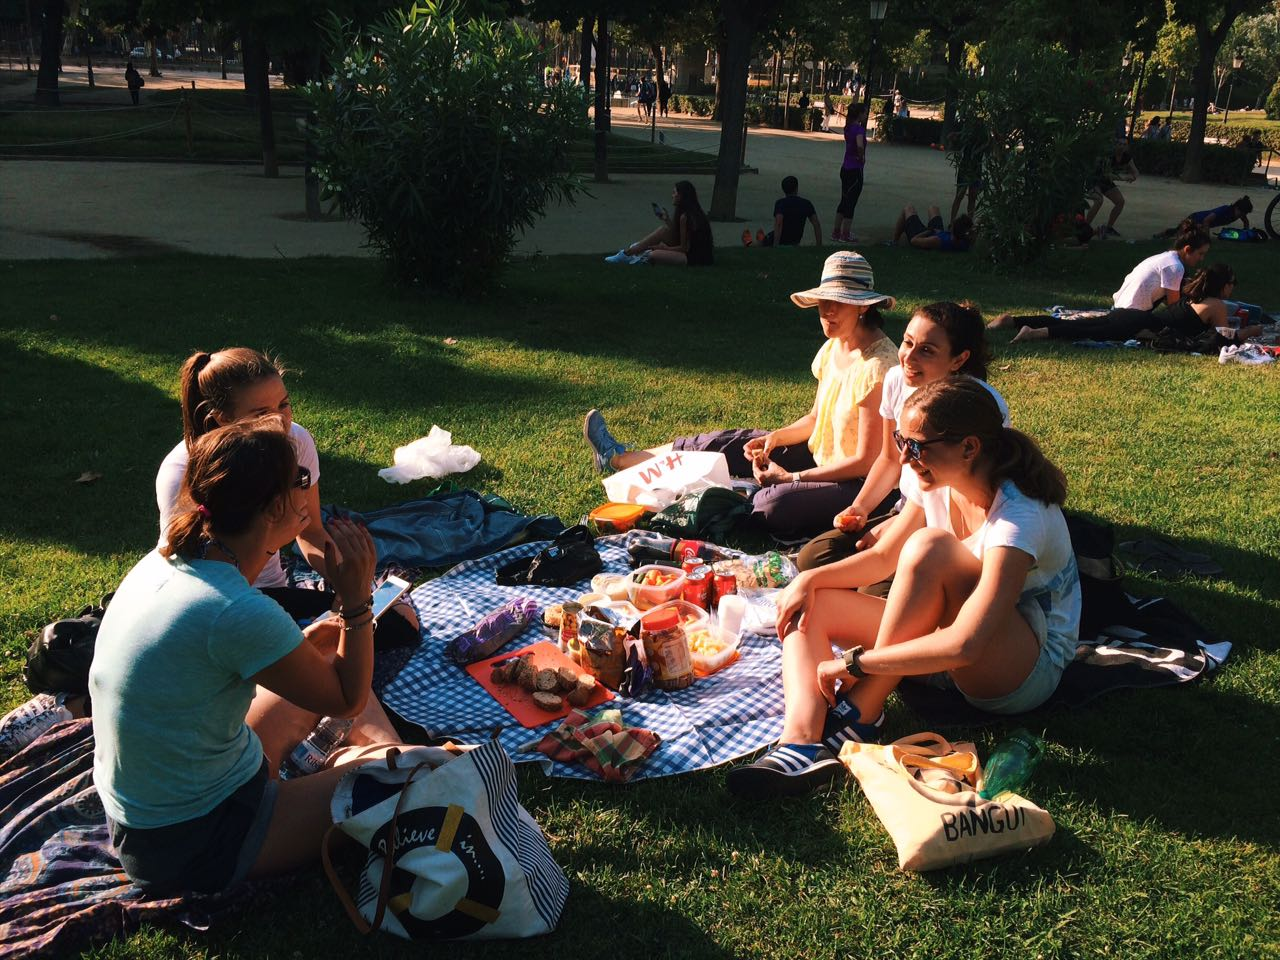 Best Picnic Food For Concert In The Park